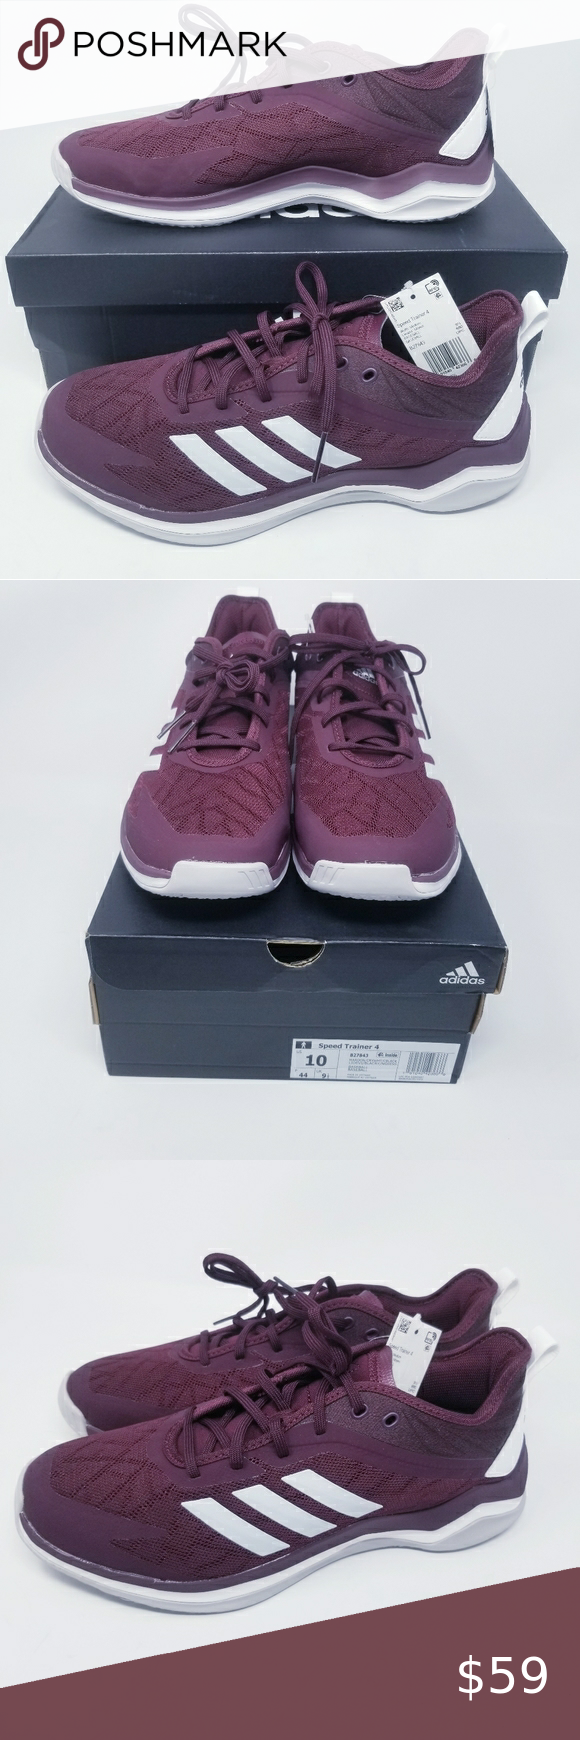 Adidas Men's Speed Trainer 4 Shoes Size 10 | Adidas men, Shoes ...